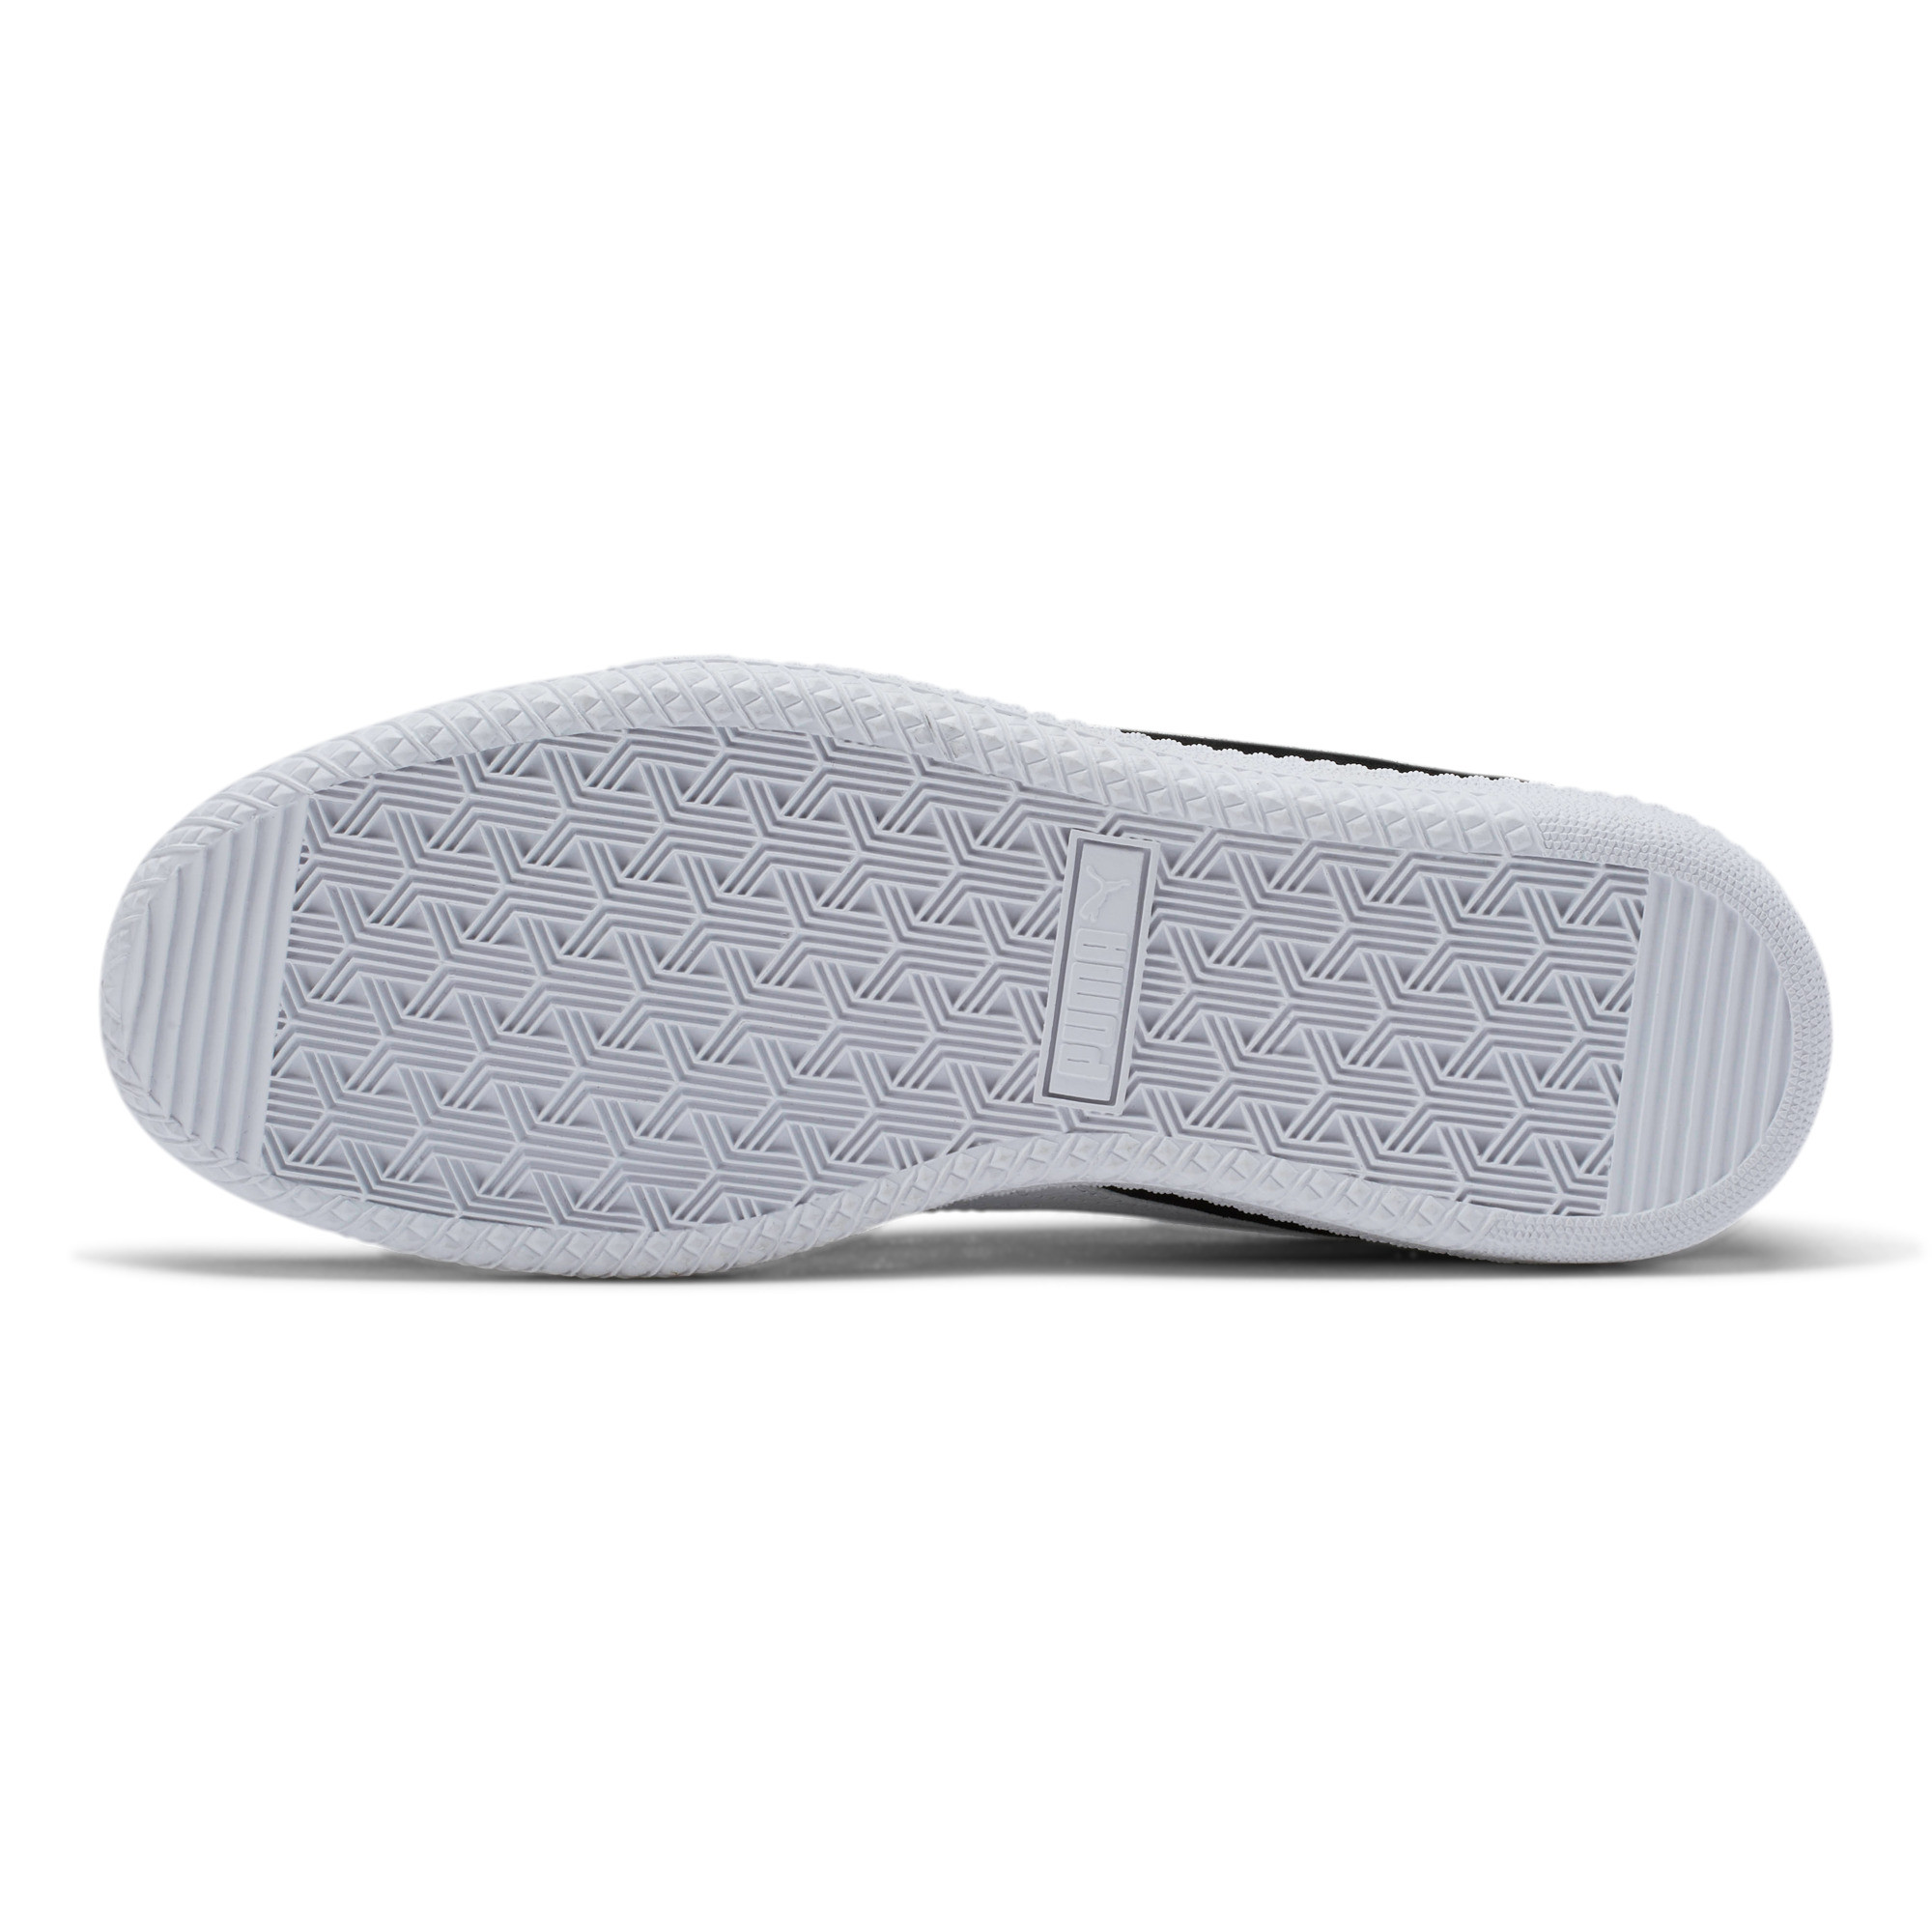 PUMA-Astro-Cup-Suede-Sneakers-Men-Shoe-Basics thumbnail 10